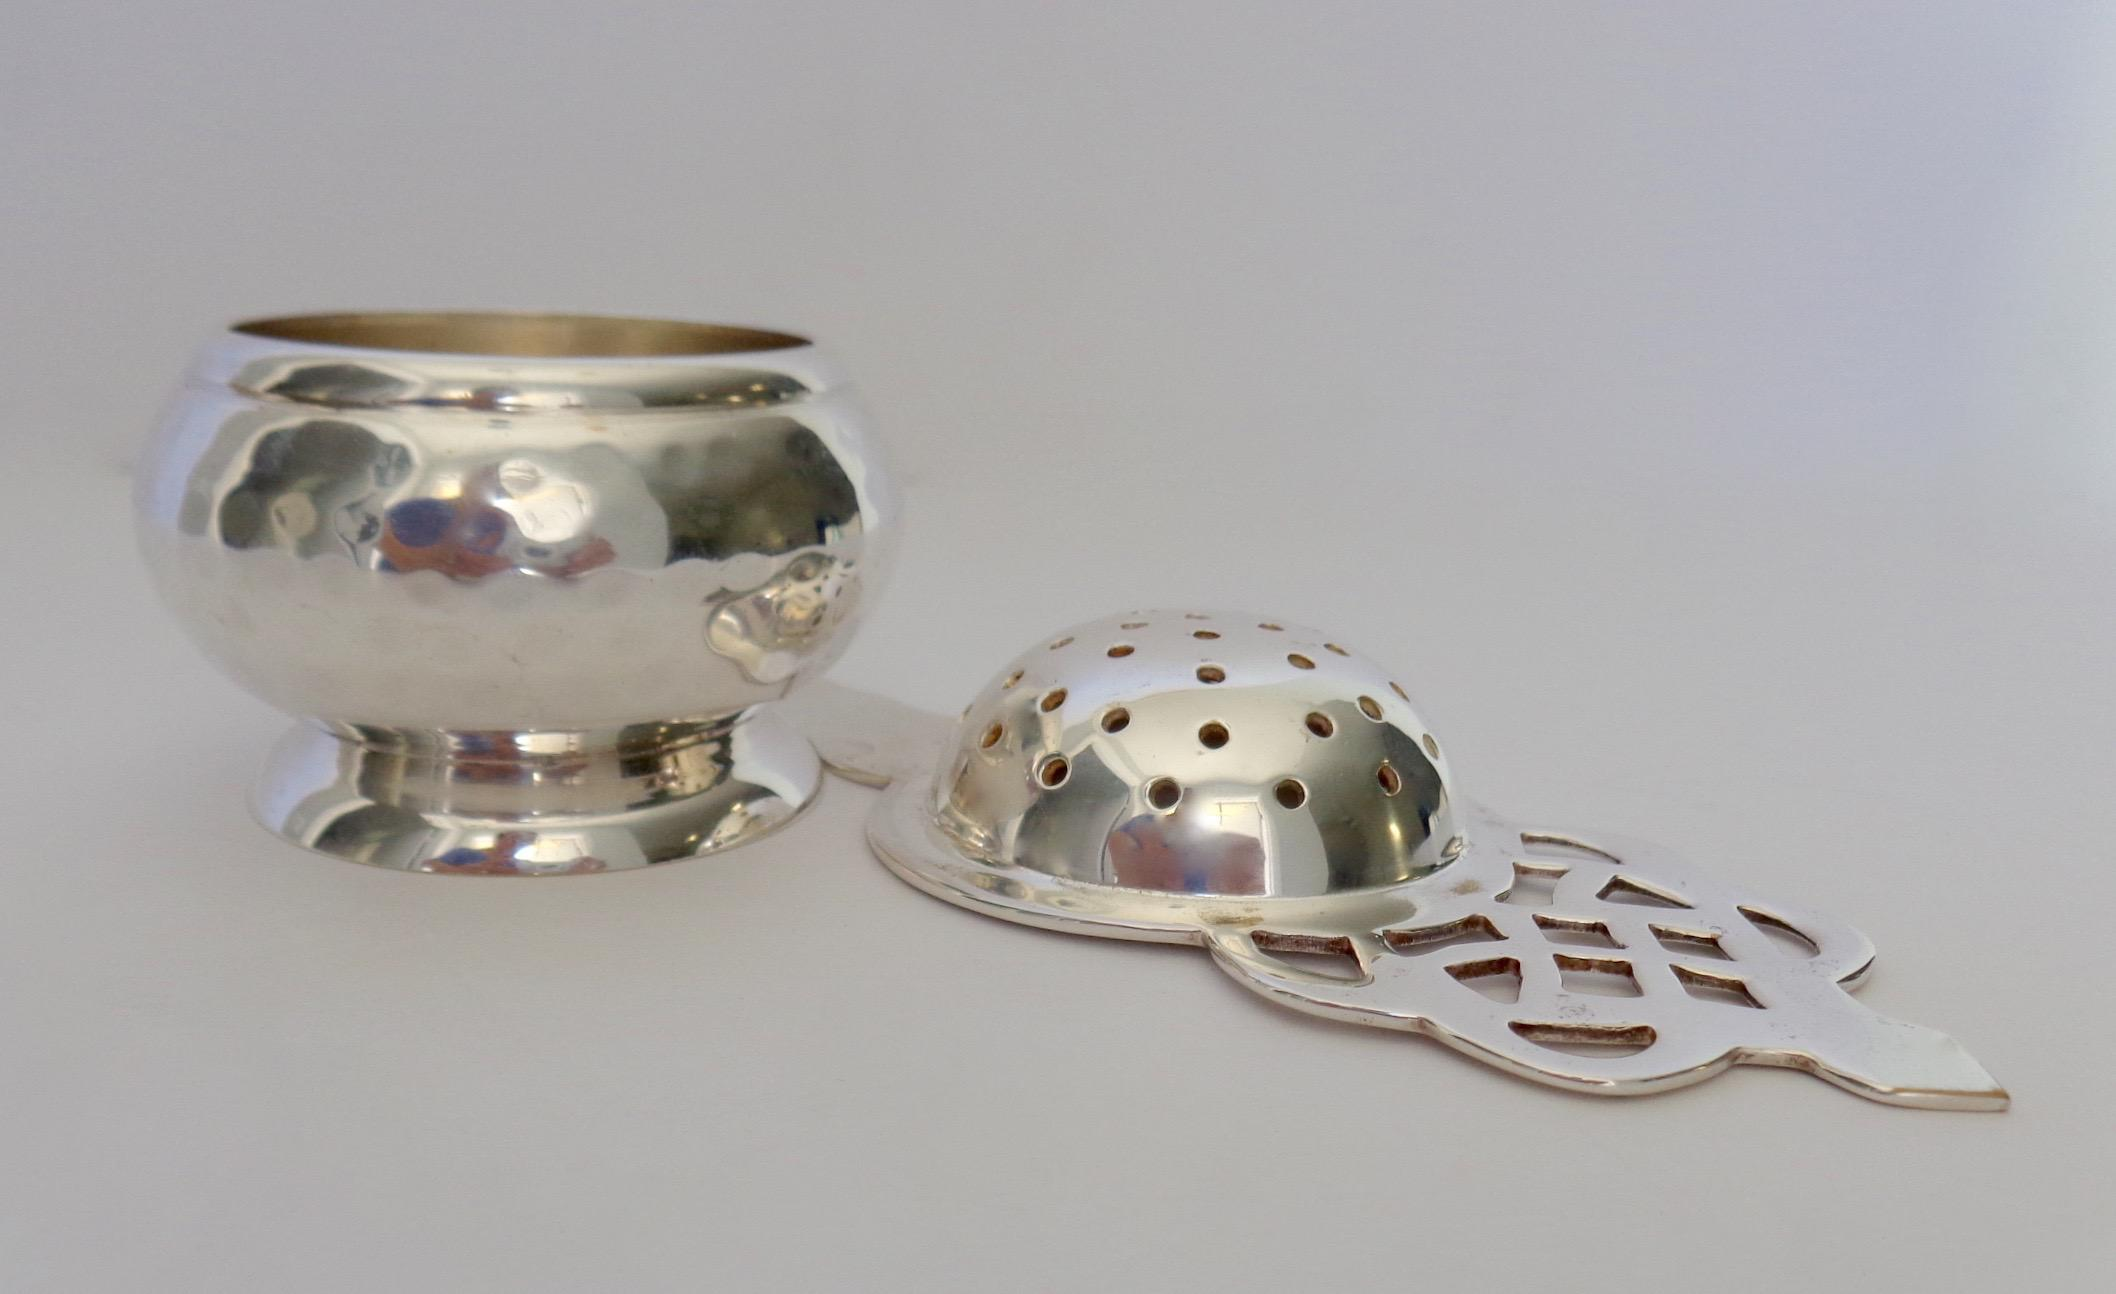 Silver Plate Tea Strainer and Cup Holder - 2 Pieces - Image 2 of 12  sc 1 st  Chairish & Silver Plate Tea Strainer and Cup Holder - 2 Pieces | Chairish